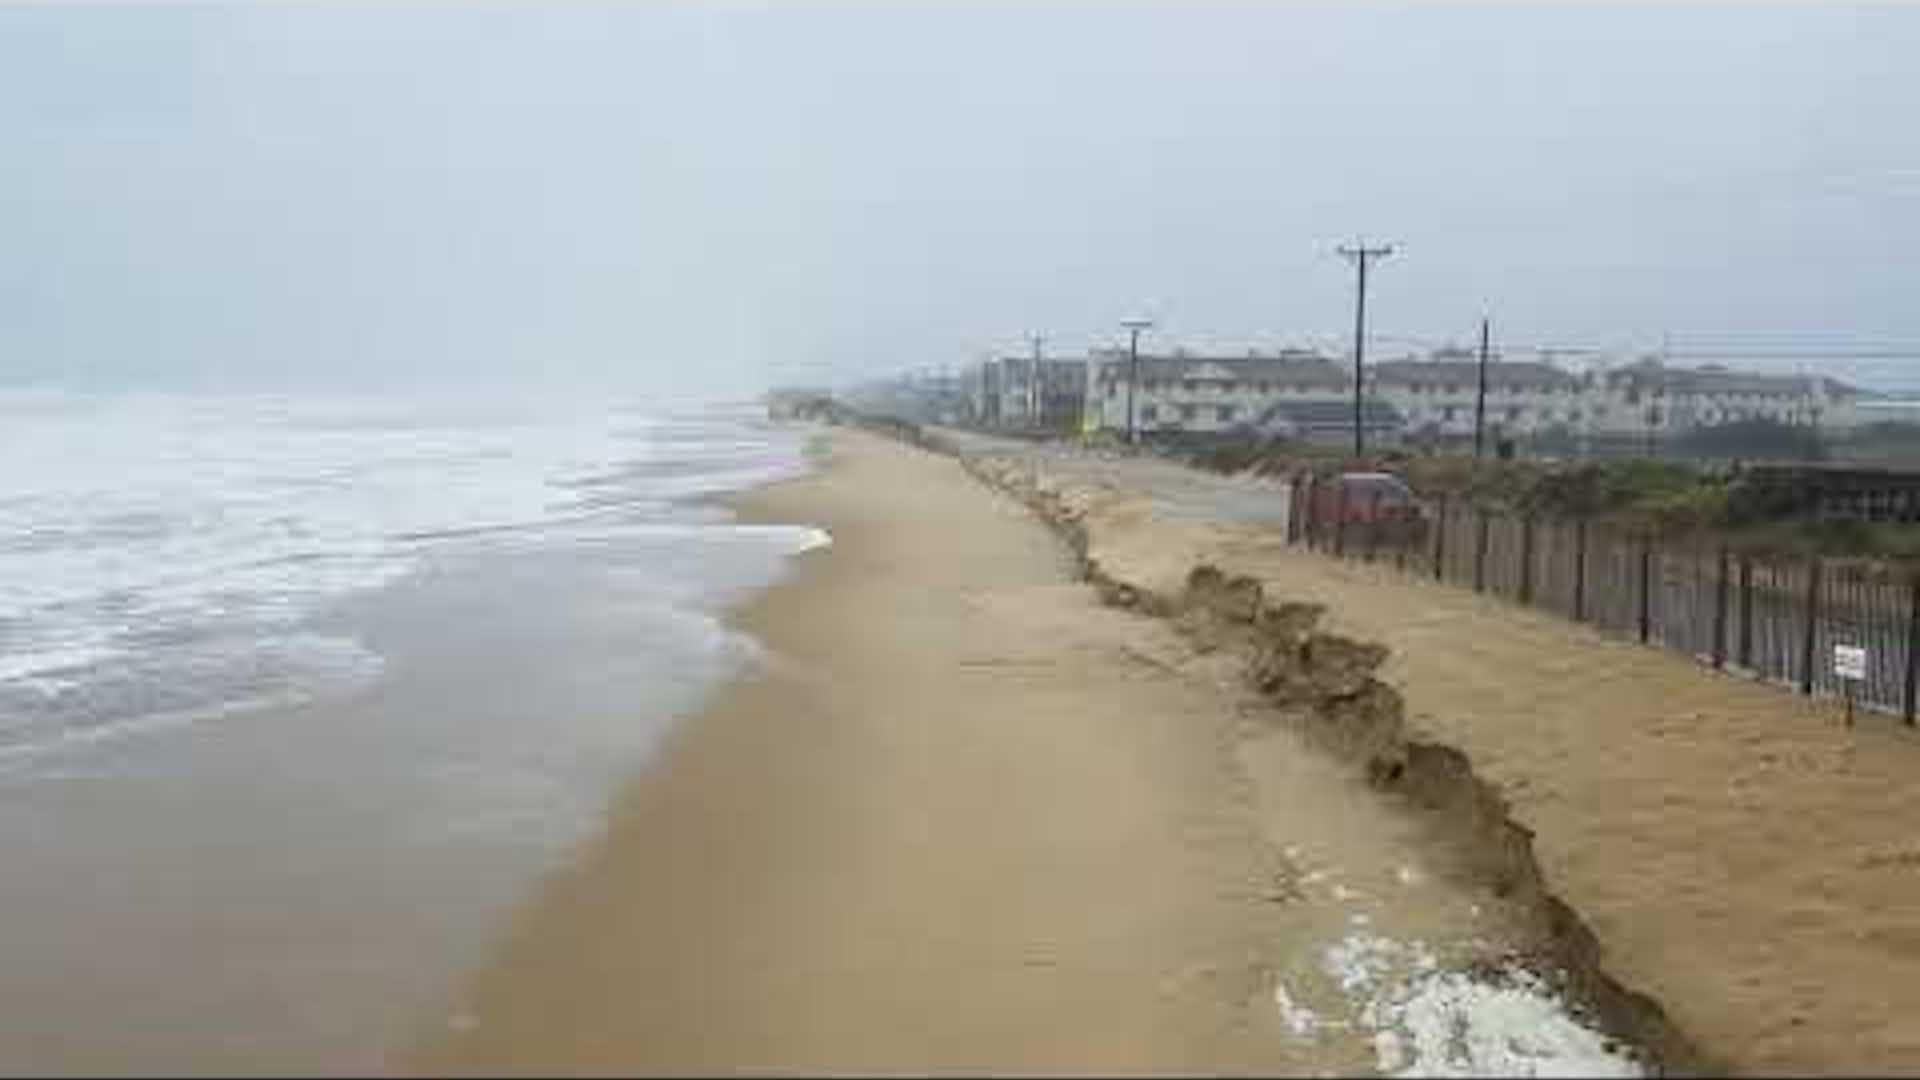 Hurricane Joses waves erode beaches in Outer Banks NC   The 1920x1080